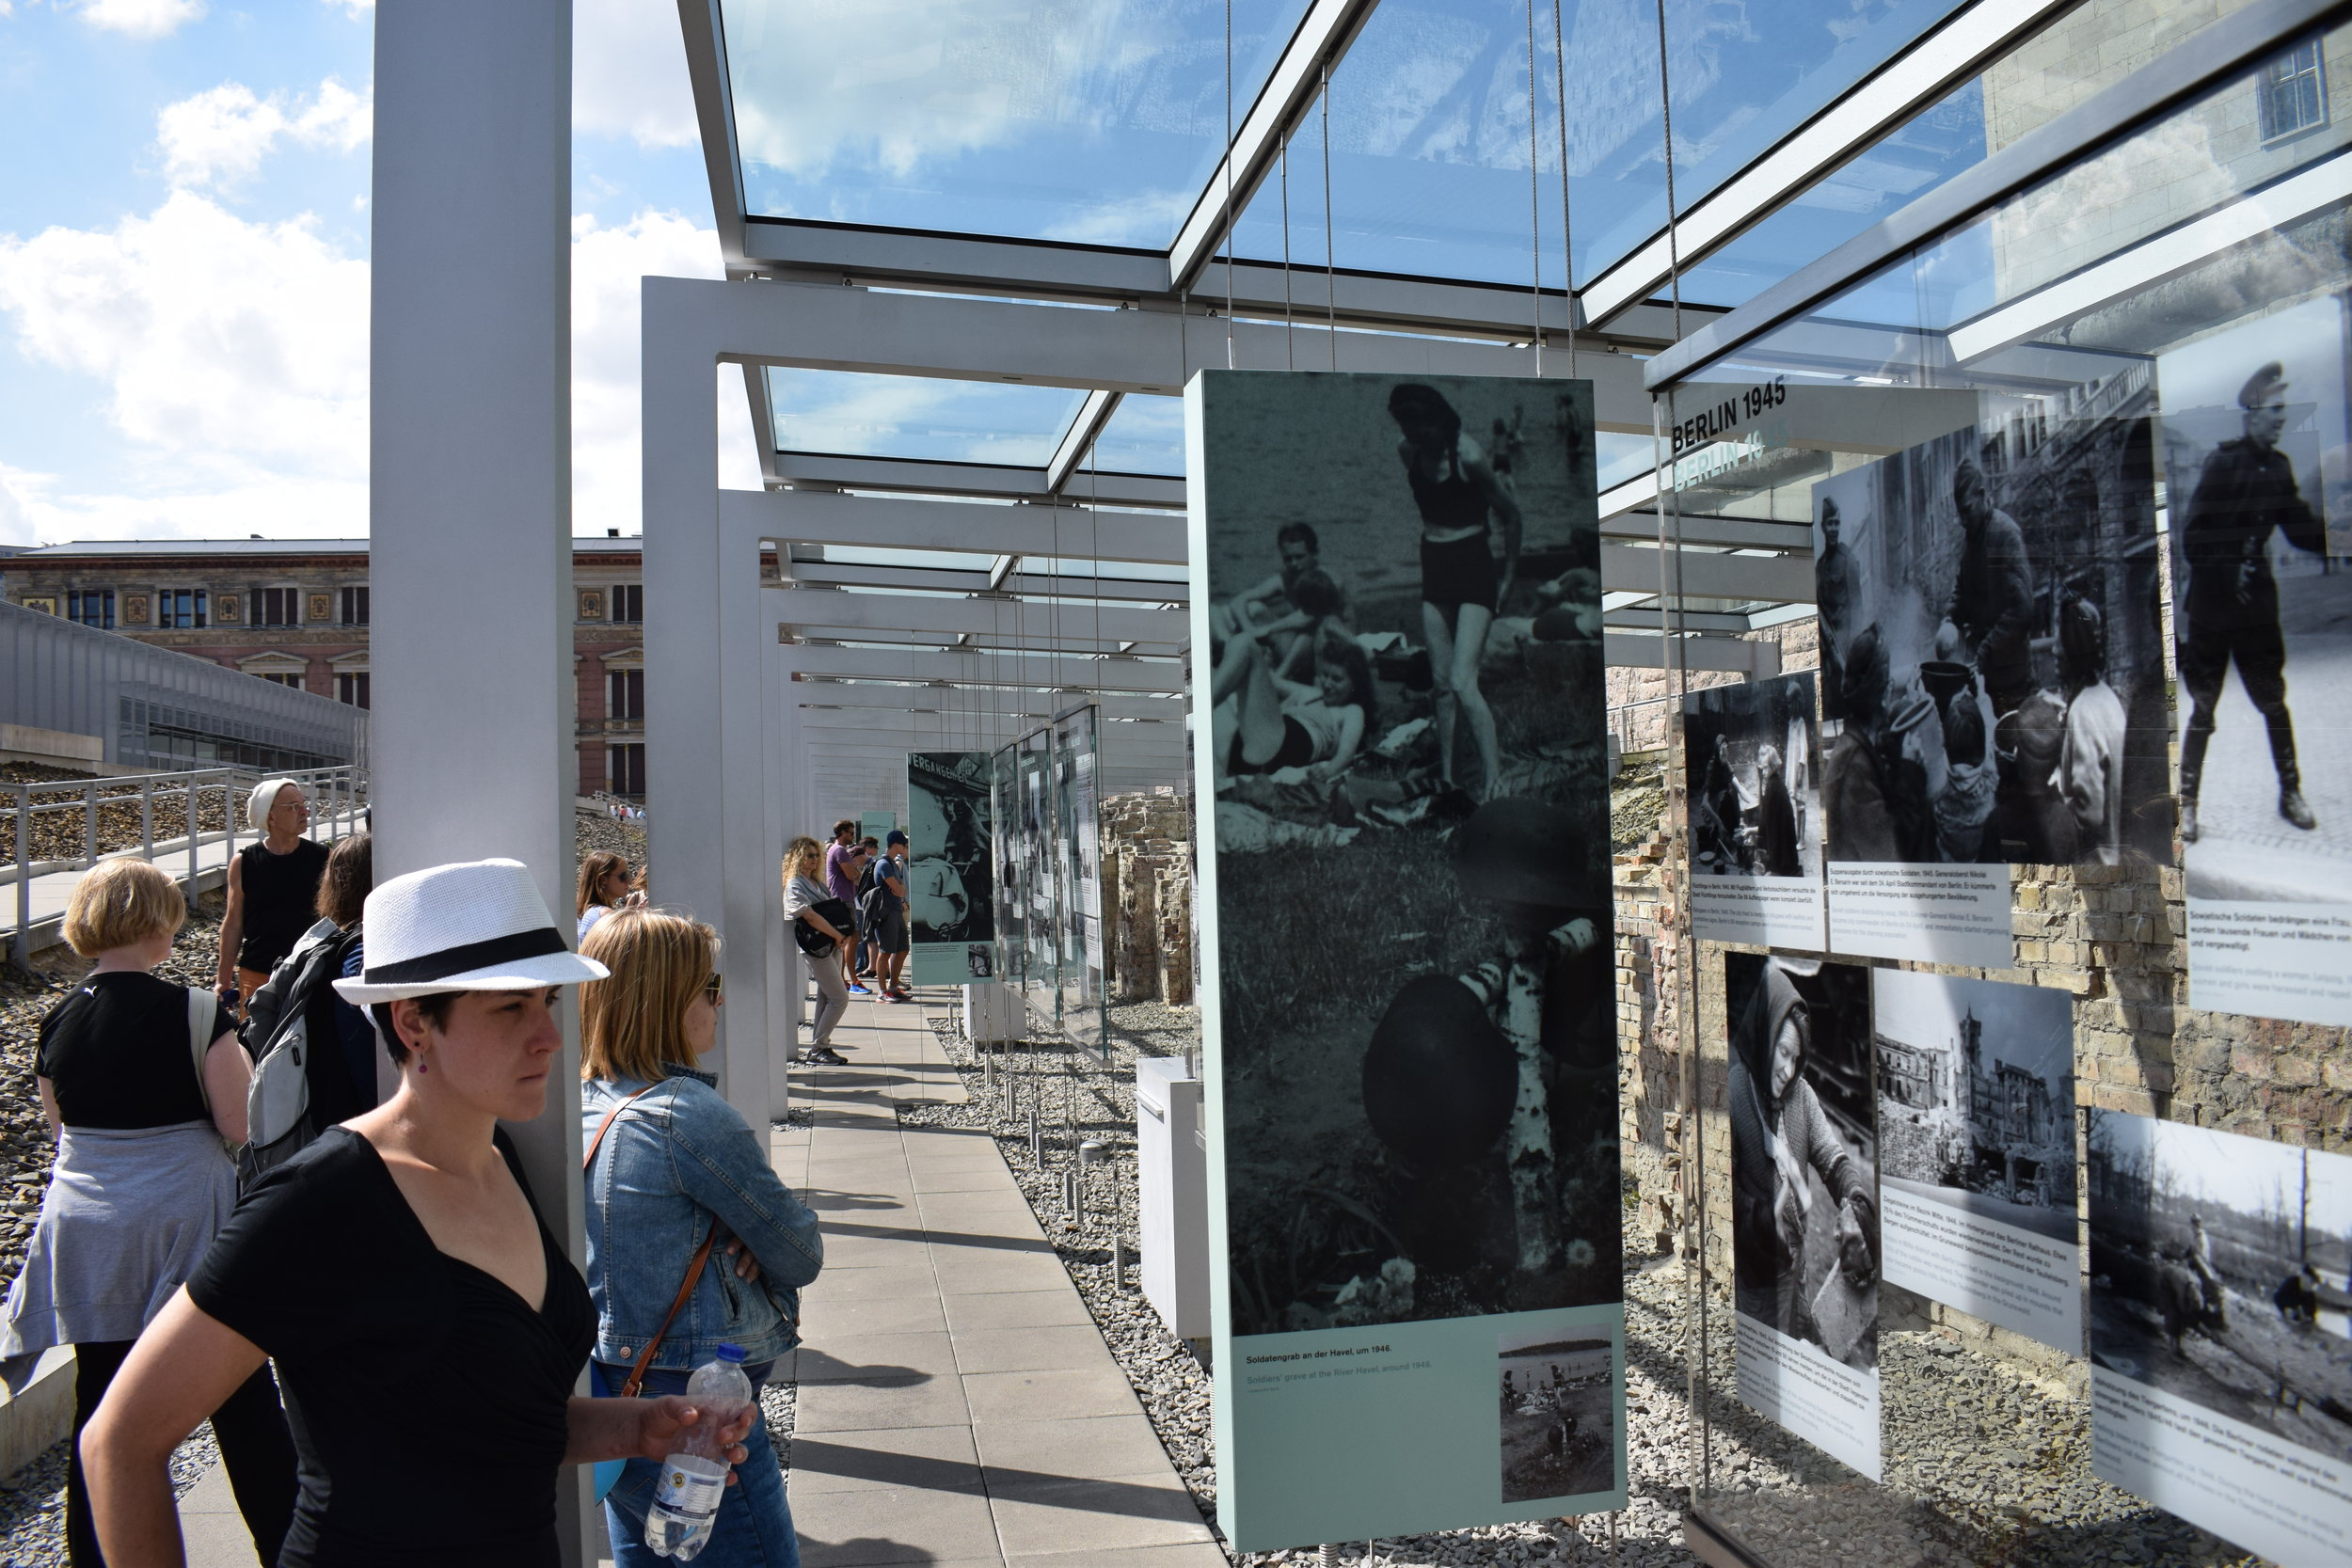 An outdoor exhibit at the Topography of Terror.